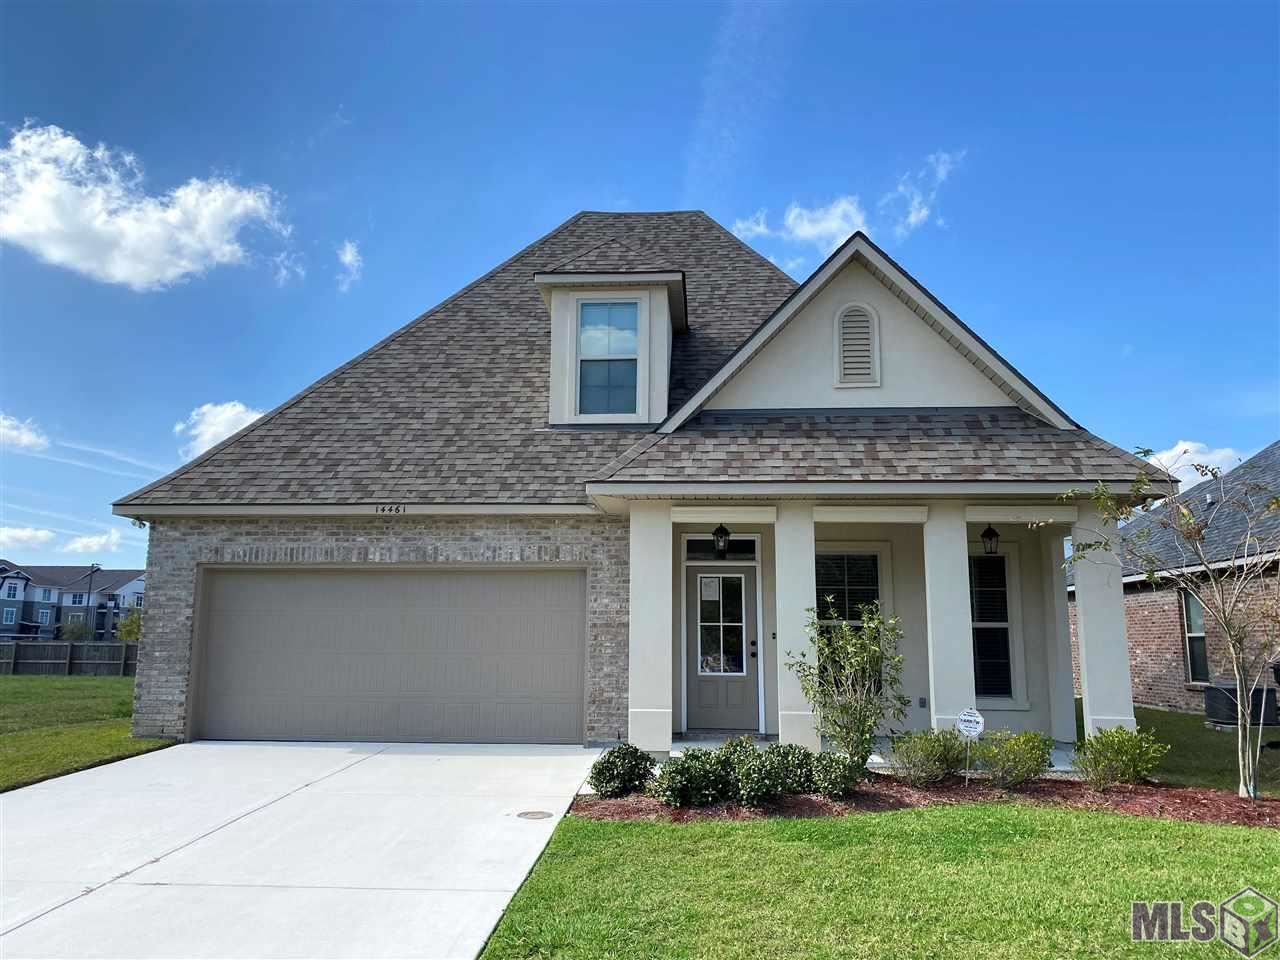 14461 STERLING OAKS DR, Gonzales, LA 70737 - MLS#: 2020018229